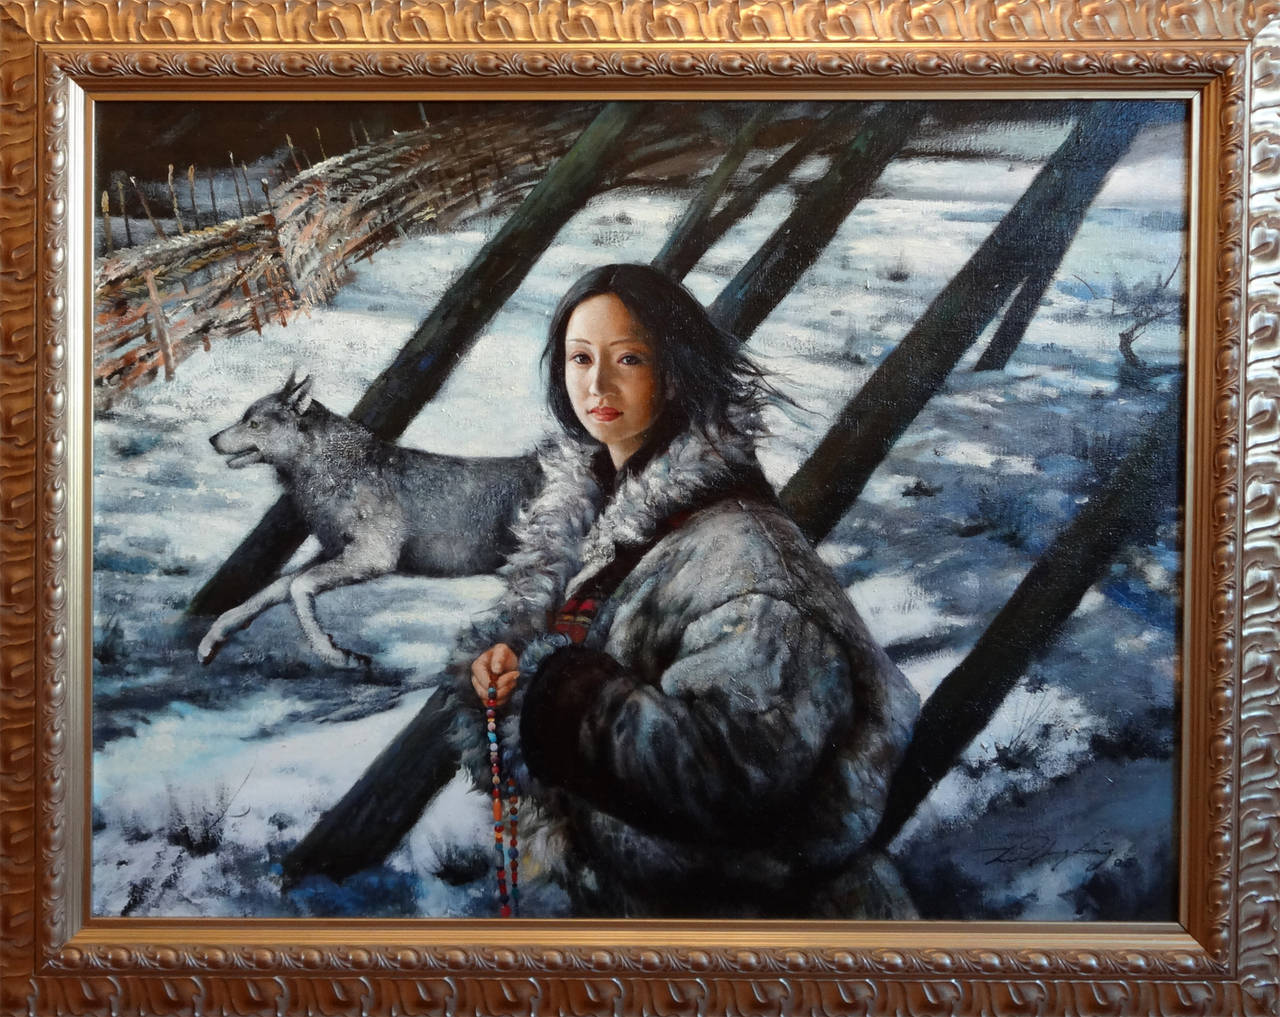 Girl With Wolf - Painting by Li Zhong Liang